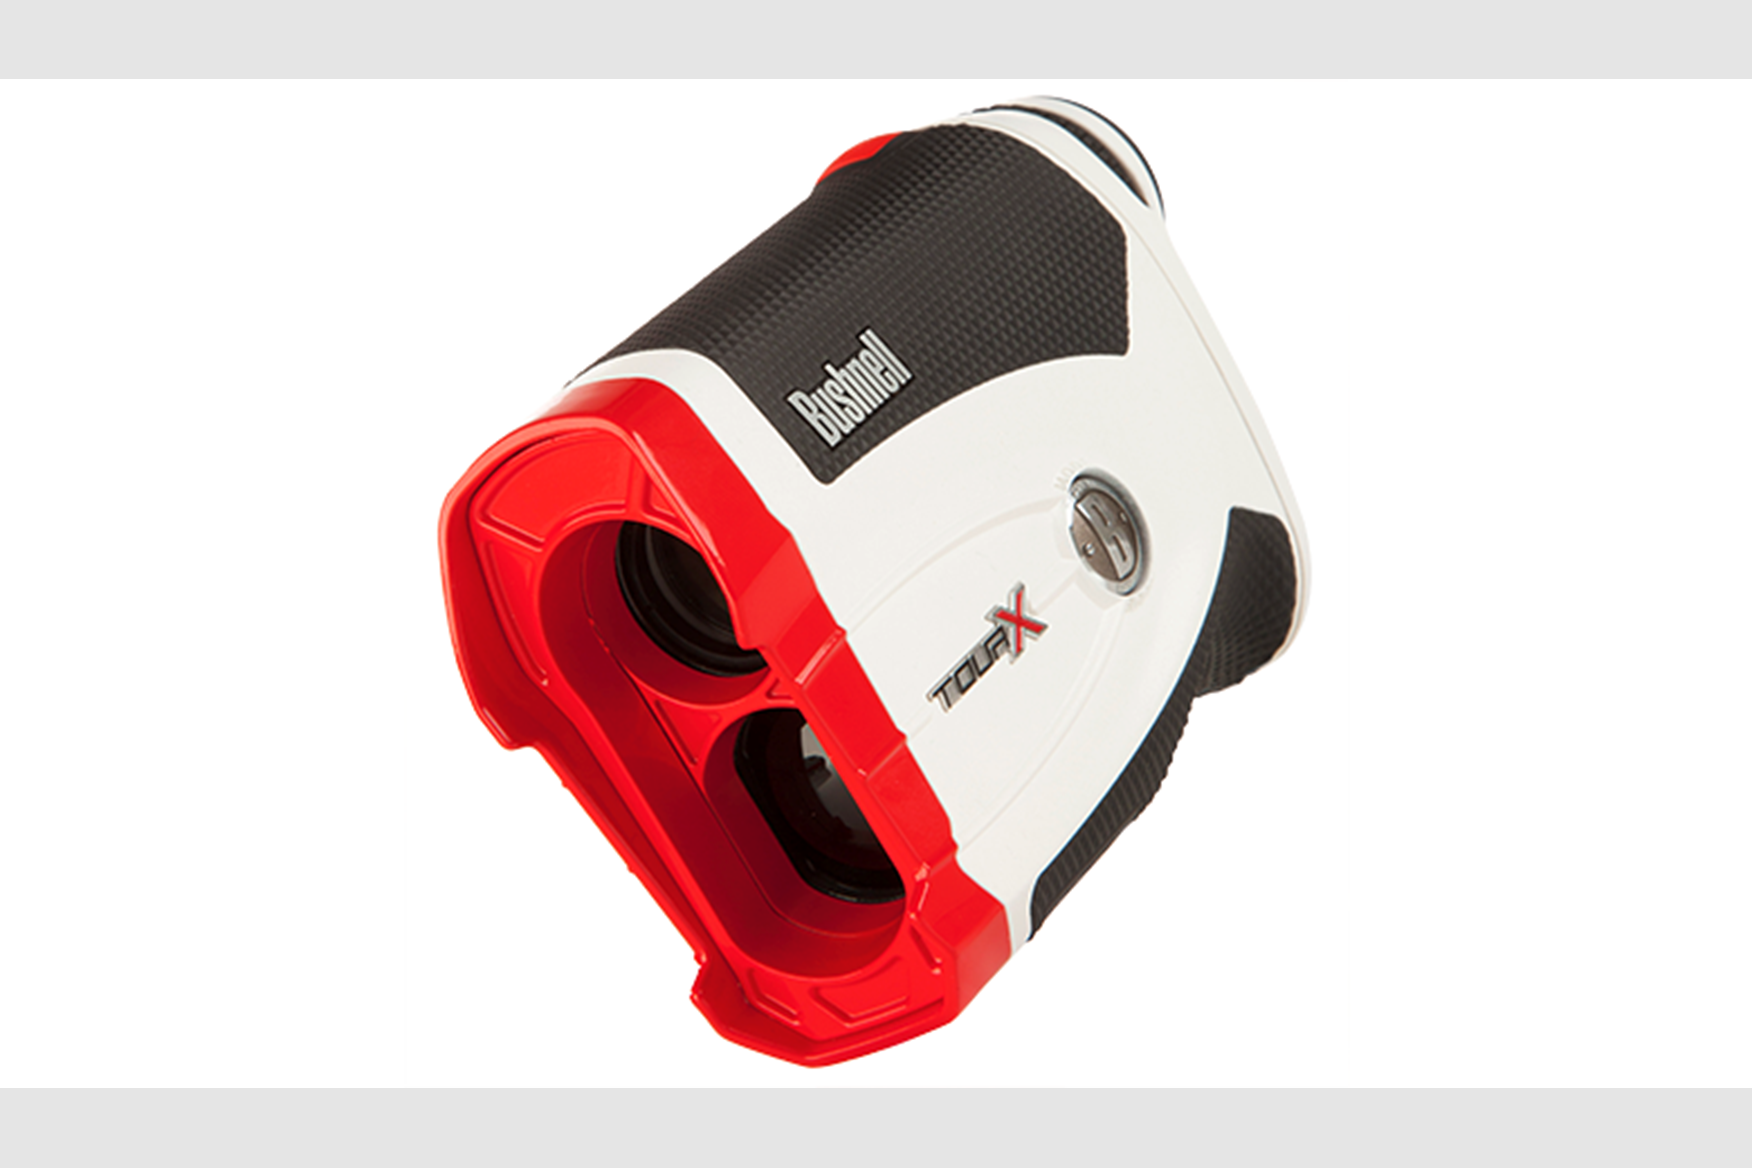 Bushnell Entfernungsmesser Tour V3 : Bushnell tour v3 rangefinder review equipment reviews todays golfer